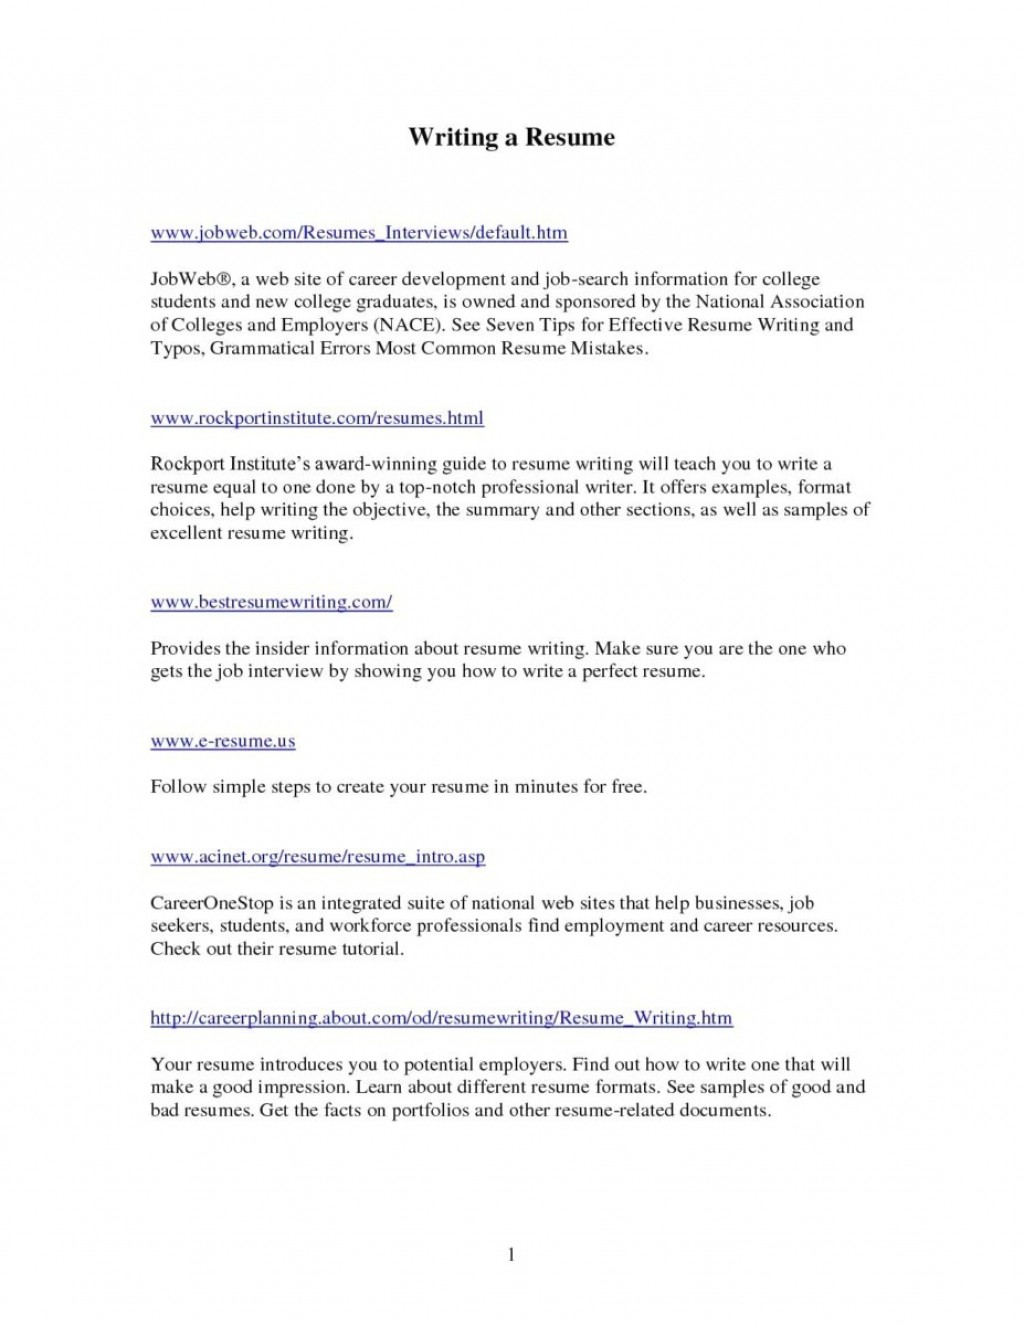 009 Research Paper Resume Writing Service Reviews Format Best Writers Inspirational Help Professional Of Free Services Essay Remarkable Outline Sample Apa Argumentative Template Large